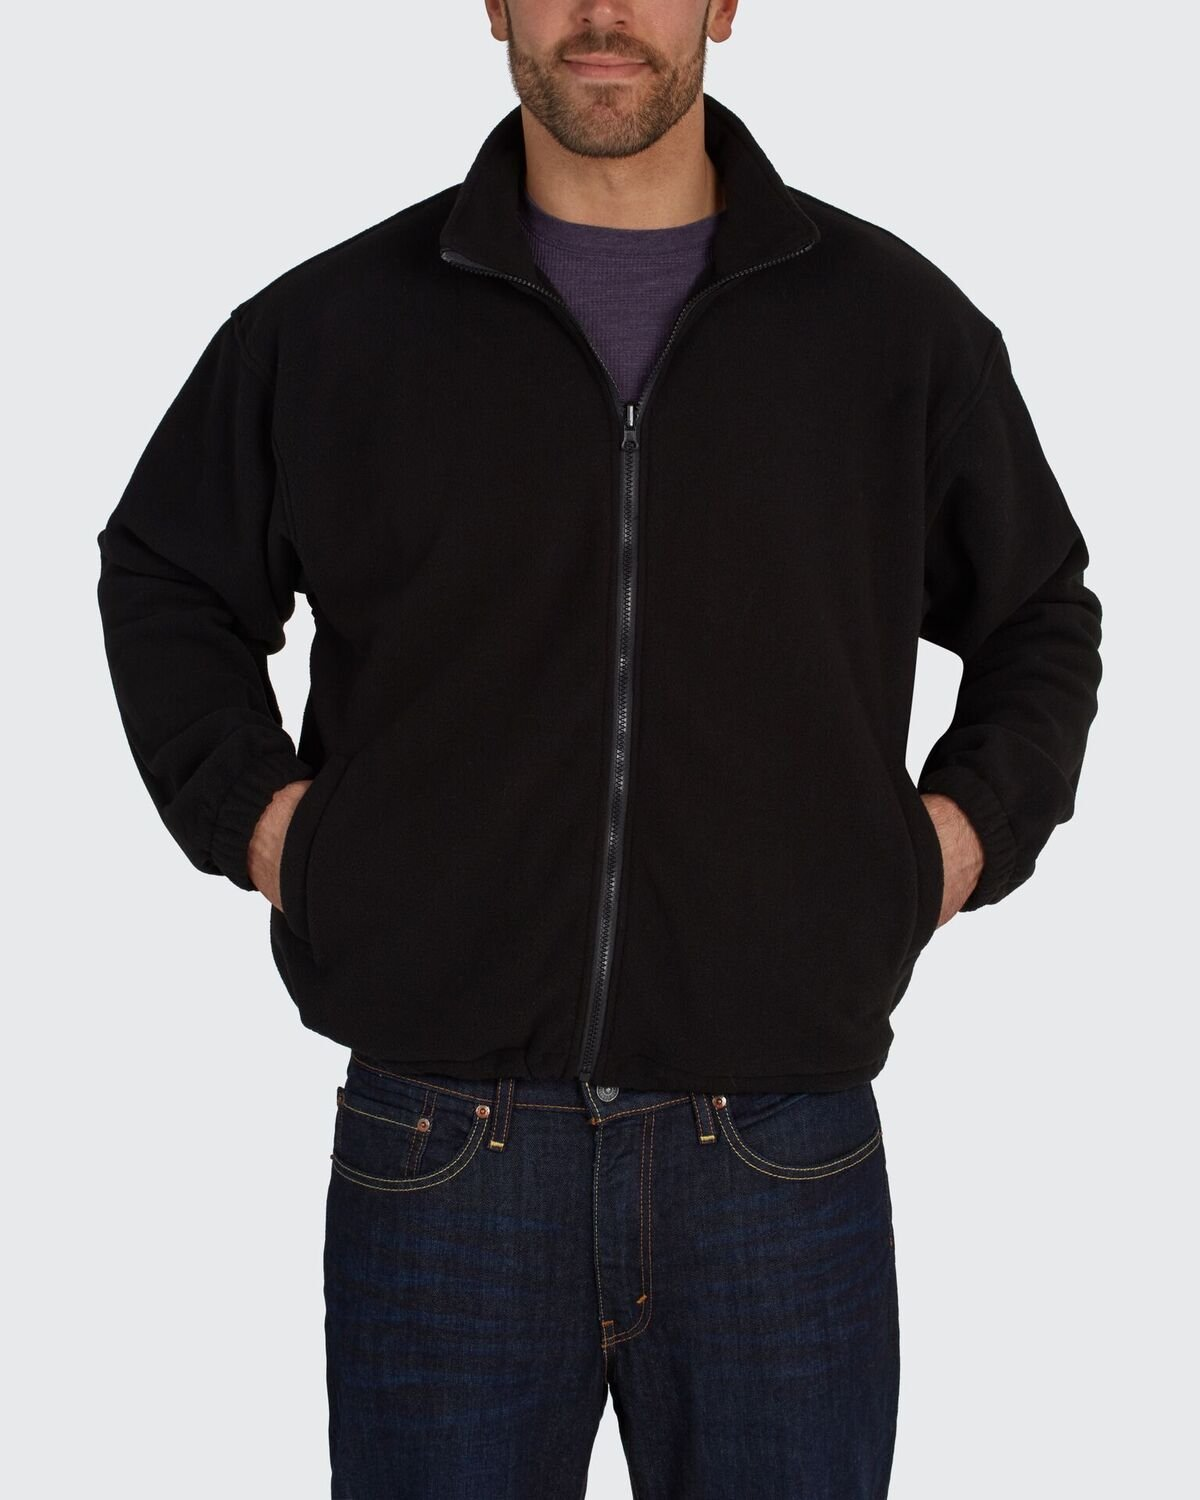 Utility Pro UHV563 Nylon//Polyester High-Vis Bomber Jacket with Zip-Out Fleece Liner with Dupont Teflon fabric protector Lime//Black X-Large